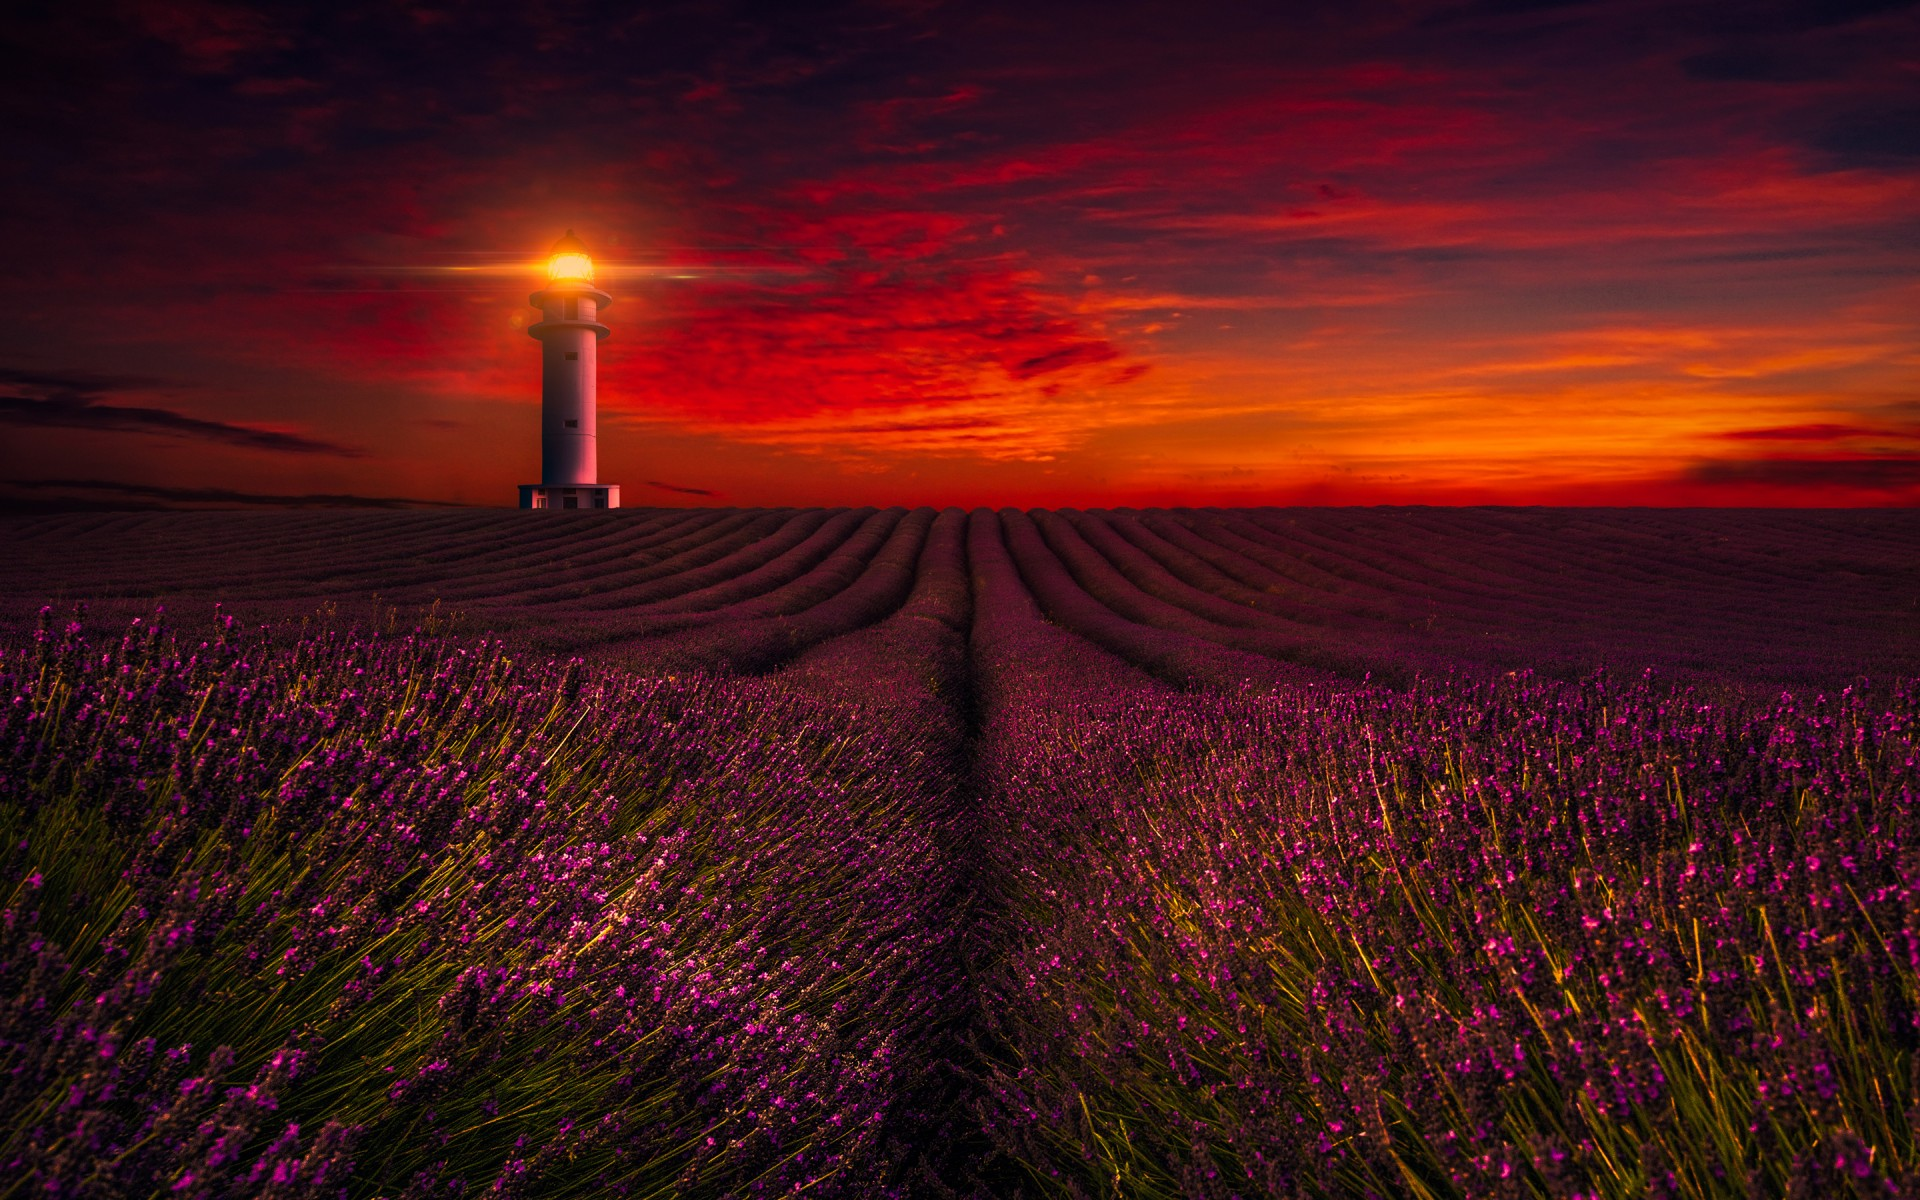 Top Iphone Wallpapers Hd Sunset Lavender Field Lighthouse 5k Wallpapers Hd